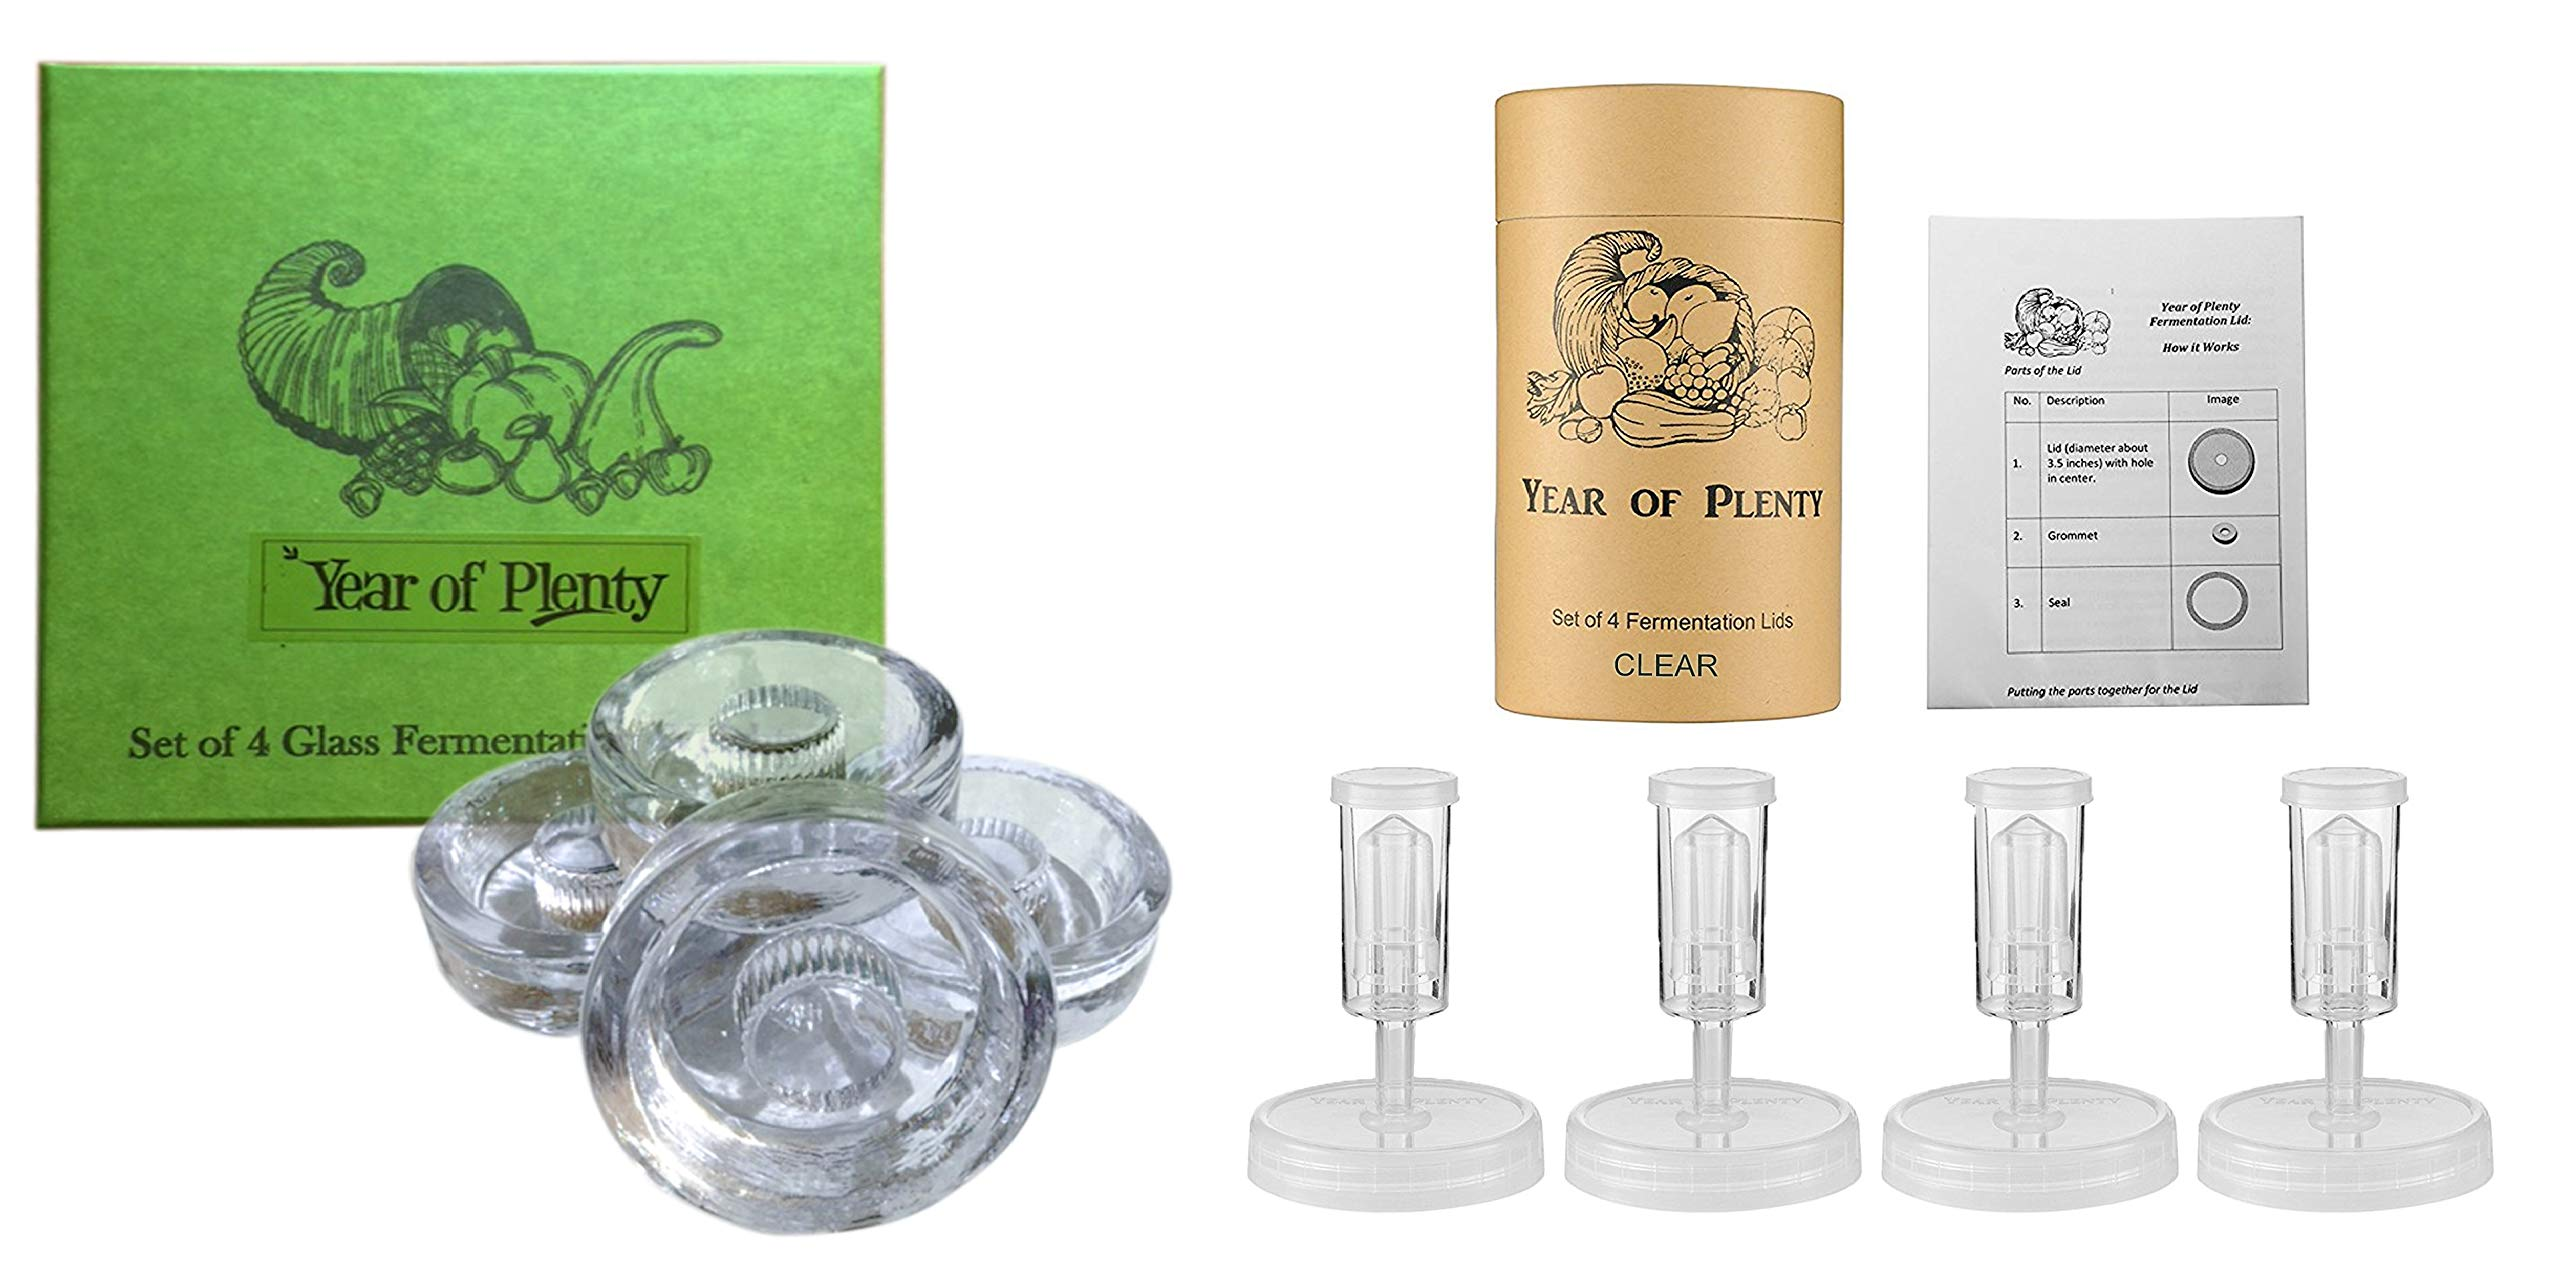 Year of Plenty Fermentation Set | Includes 4 NonSlip Grip Glass Fermentation Weights and 4 Clear Fermenting Lids | For Wide Mouth Mason Jar Ferments such as Sauerkraut, Kimchi and Pickles